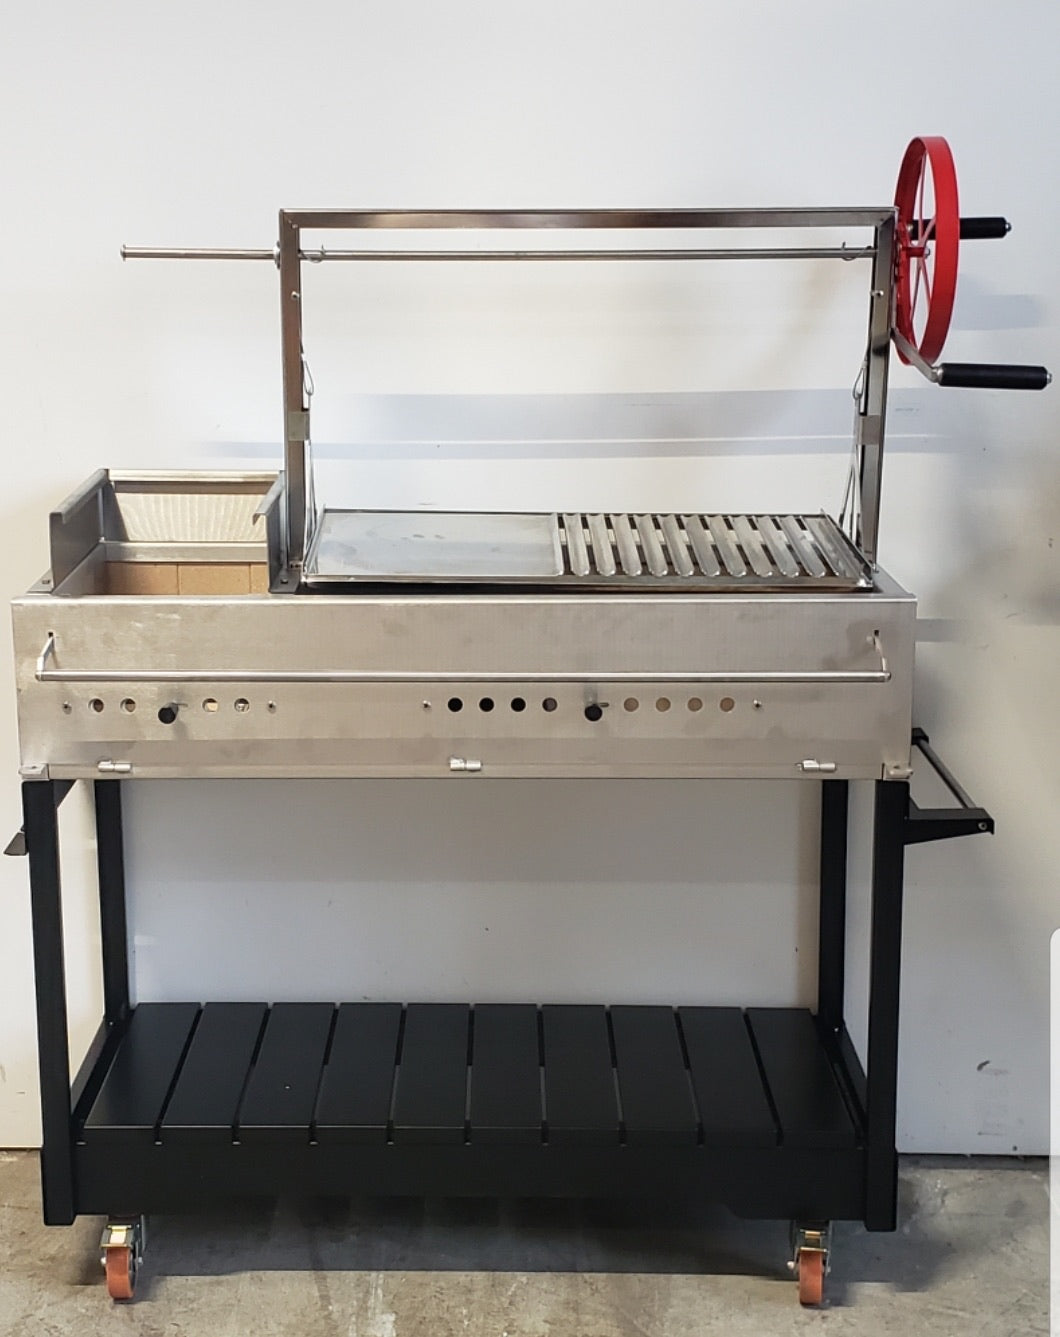 Argentinian Grill - Stainless Steel with cart